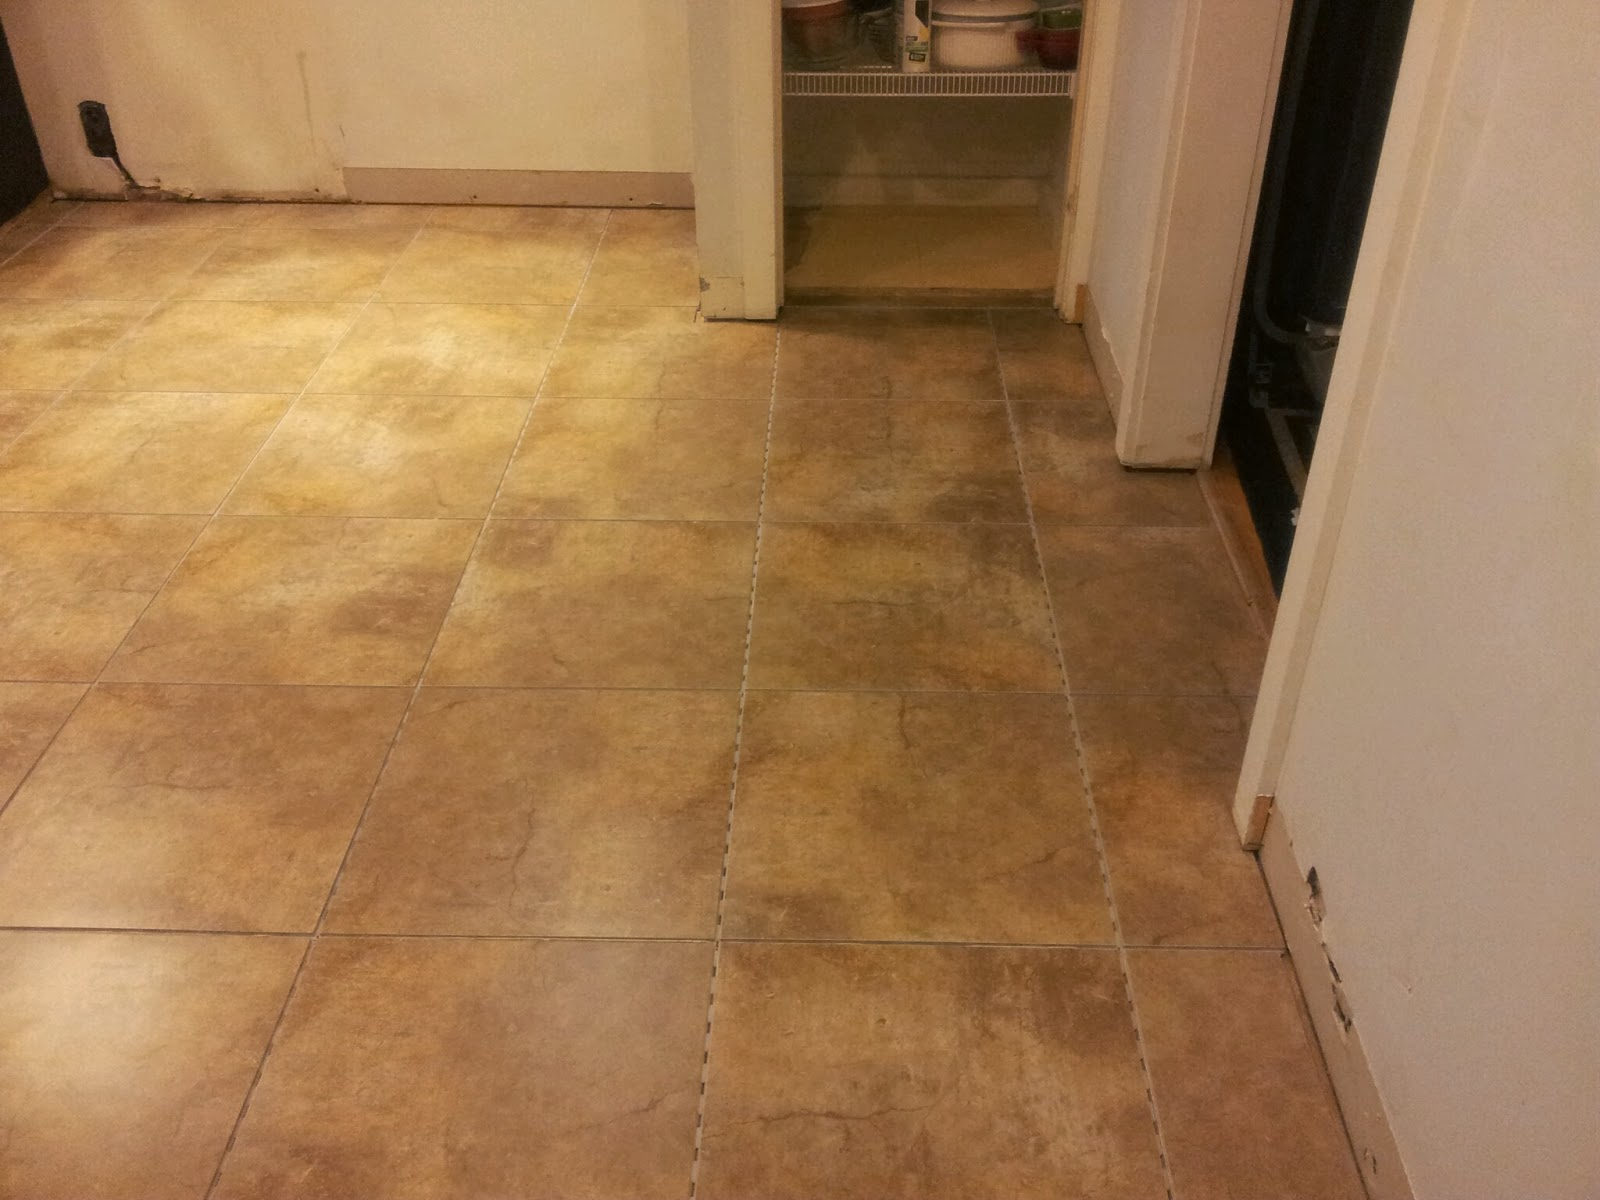 Ceramic Kitchen Tile Flooring Installing Snapstone Kitchen Floor Tile For Our Home Remodel Ian